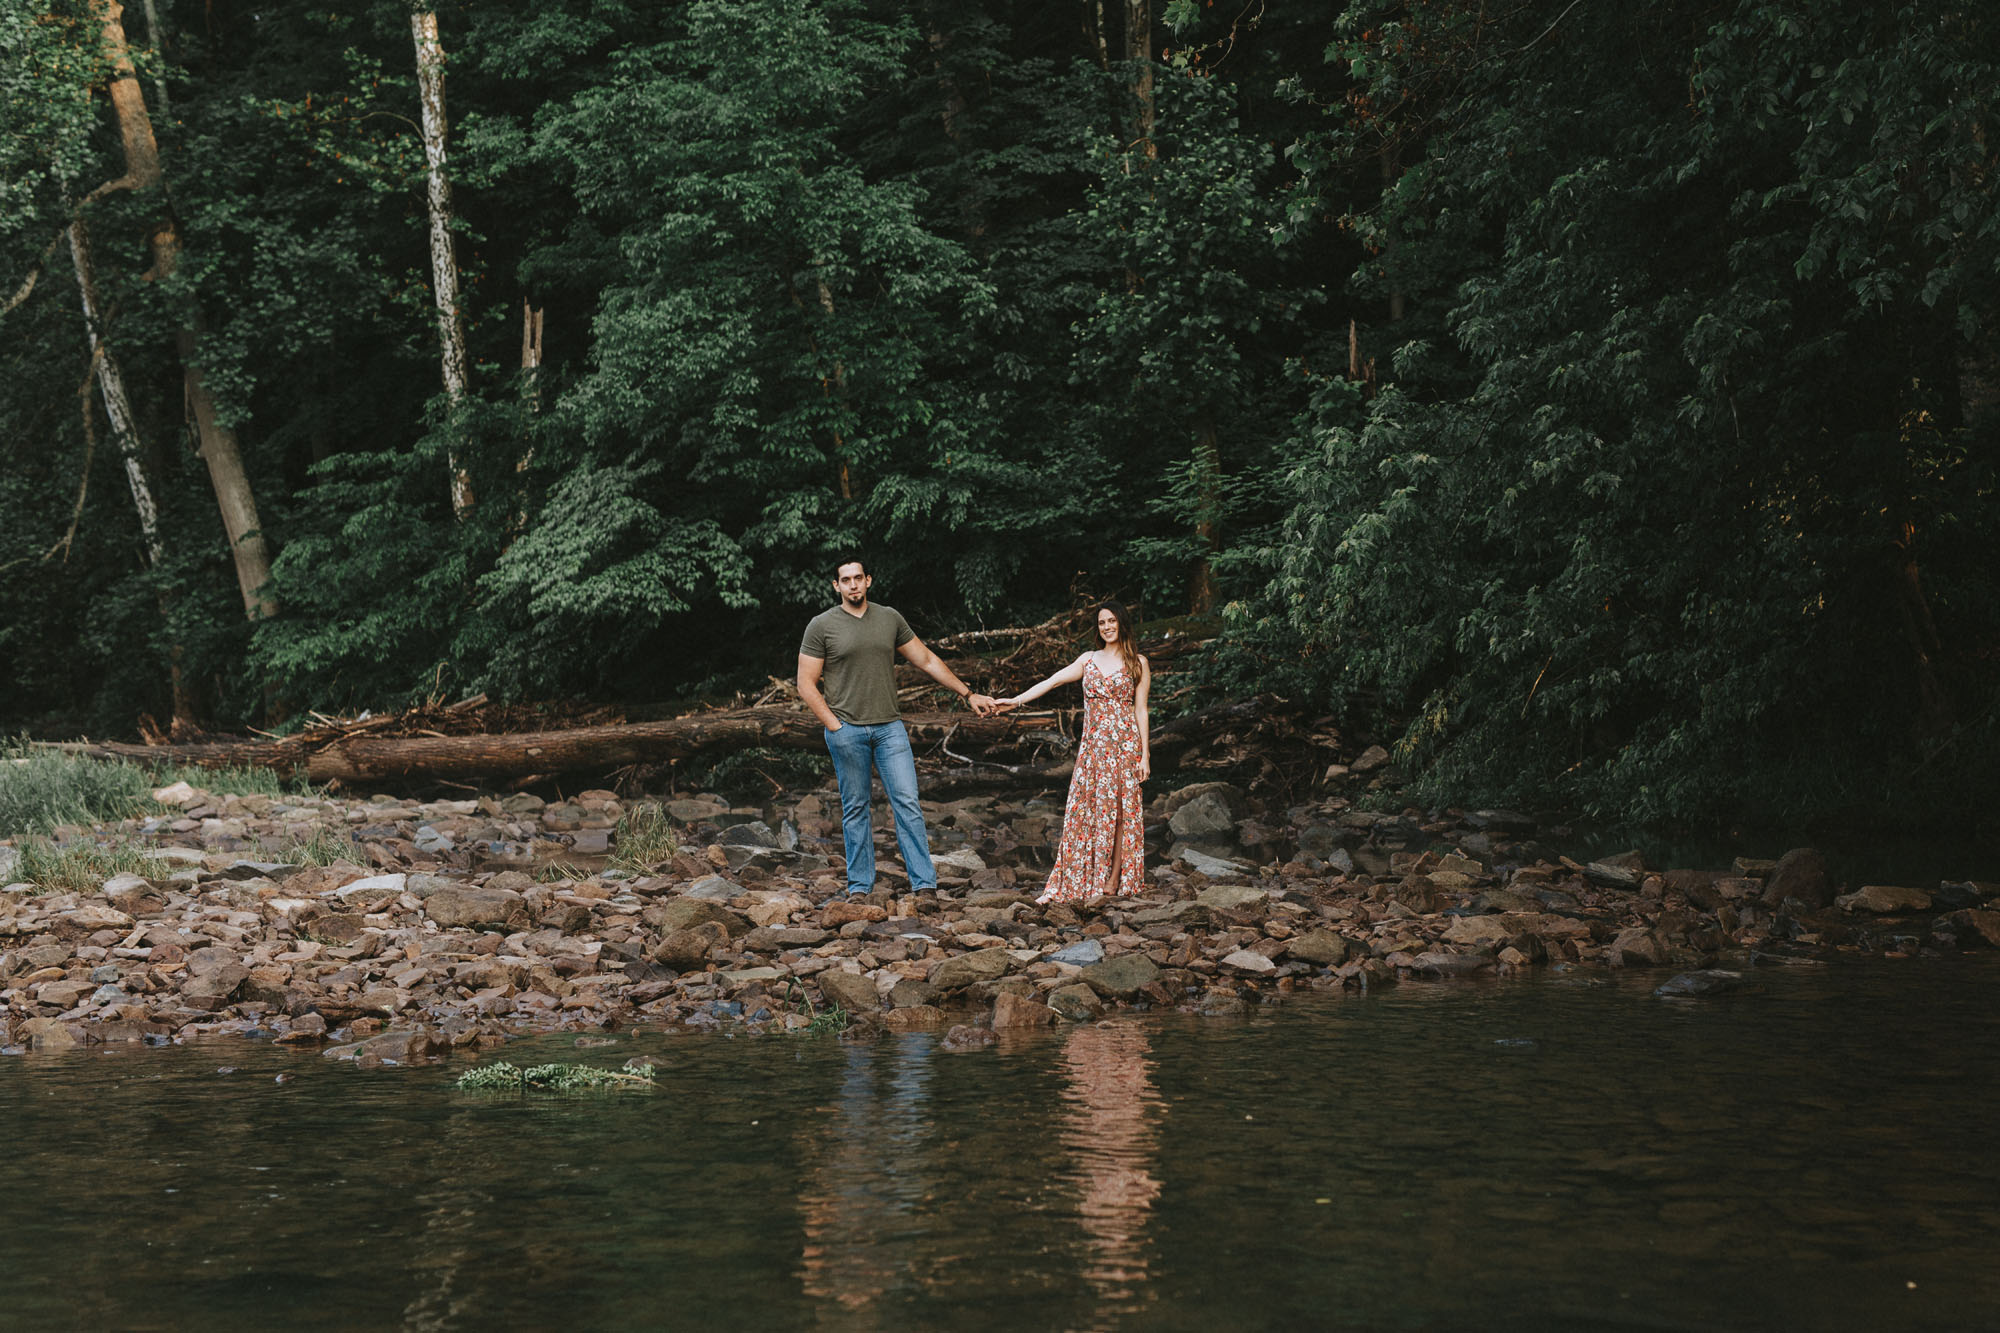 Twisted-Oaks-Studio-Tyler-Park-Engagement-9654.jpg